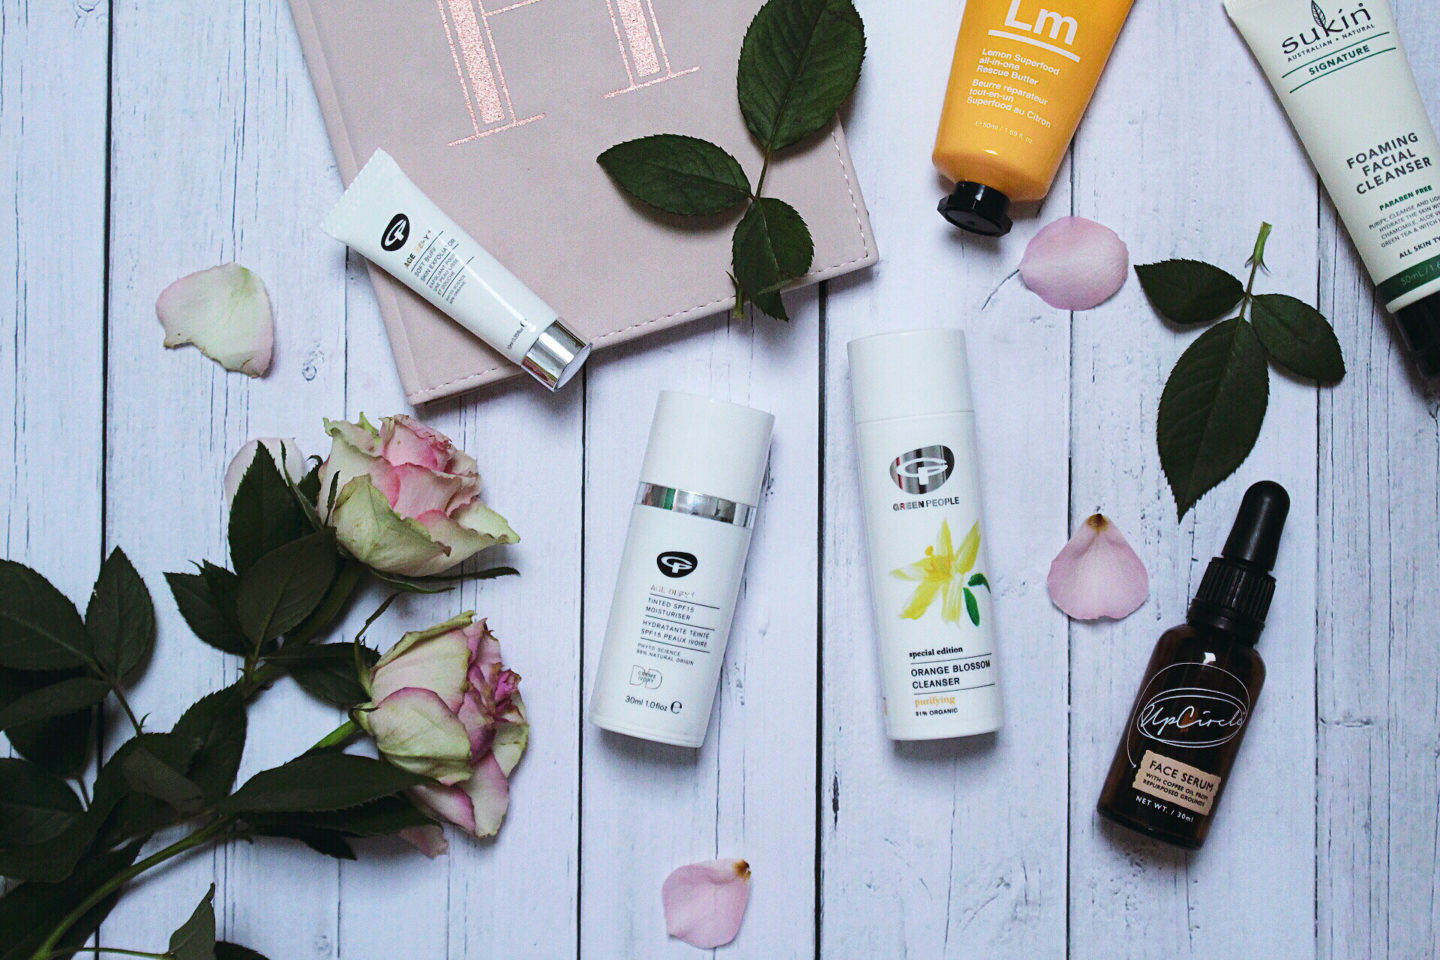 Green Beauty - Vegan Brands you have to try in 2020